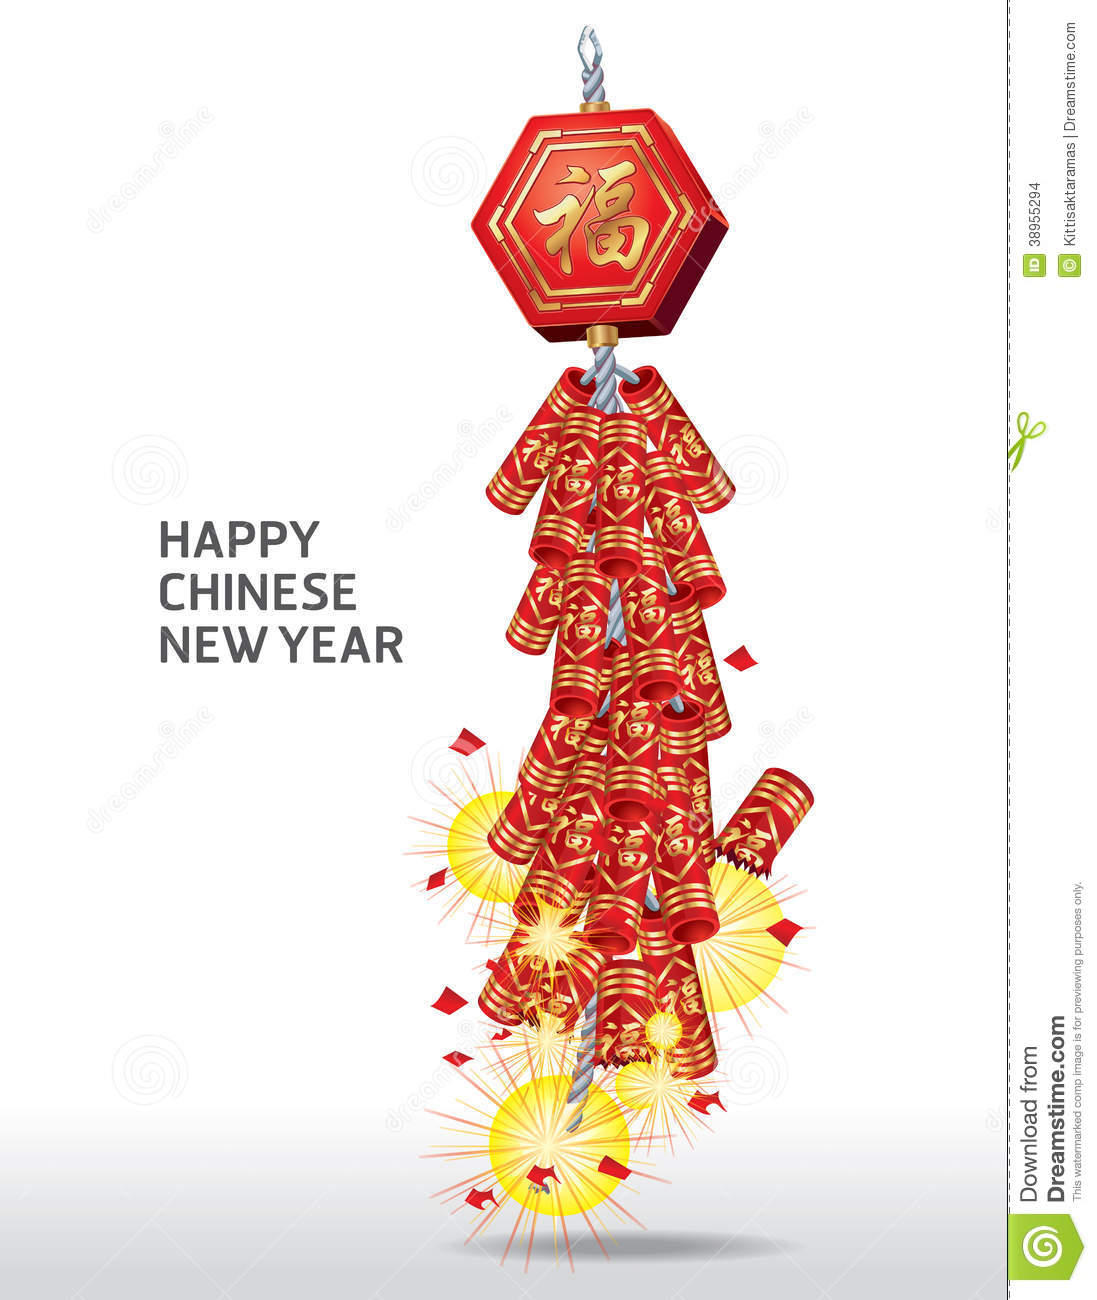 Fire Cracker Chinese New Year. Stock Vector.